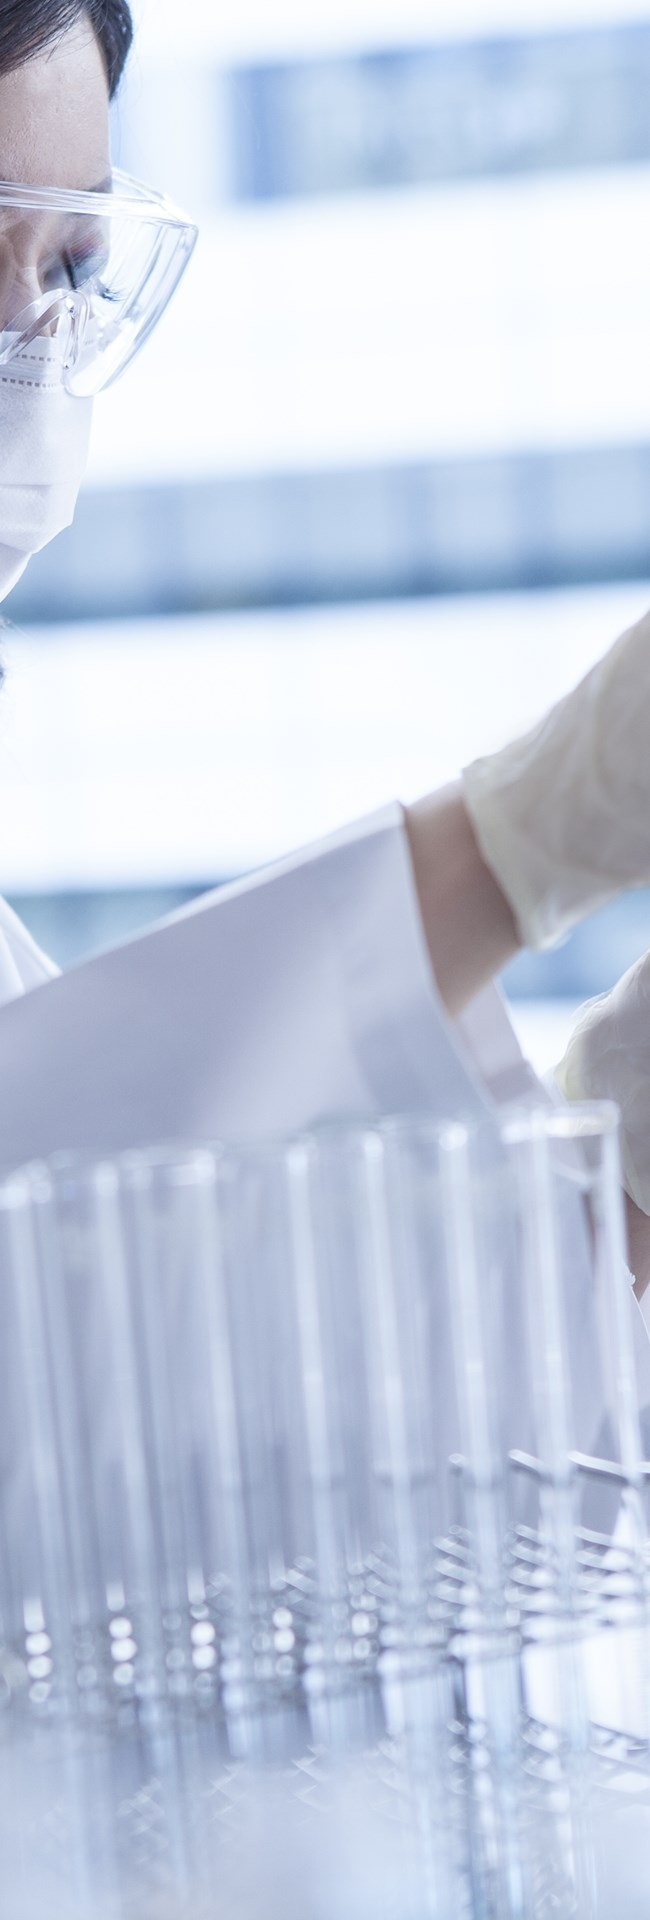 Female working in lab